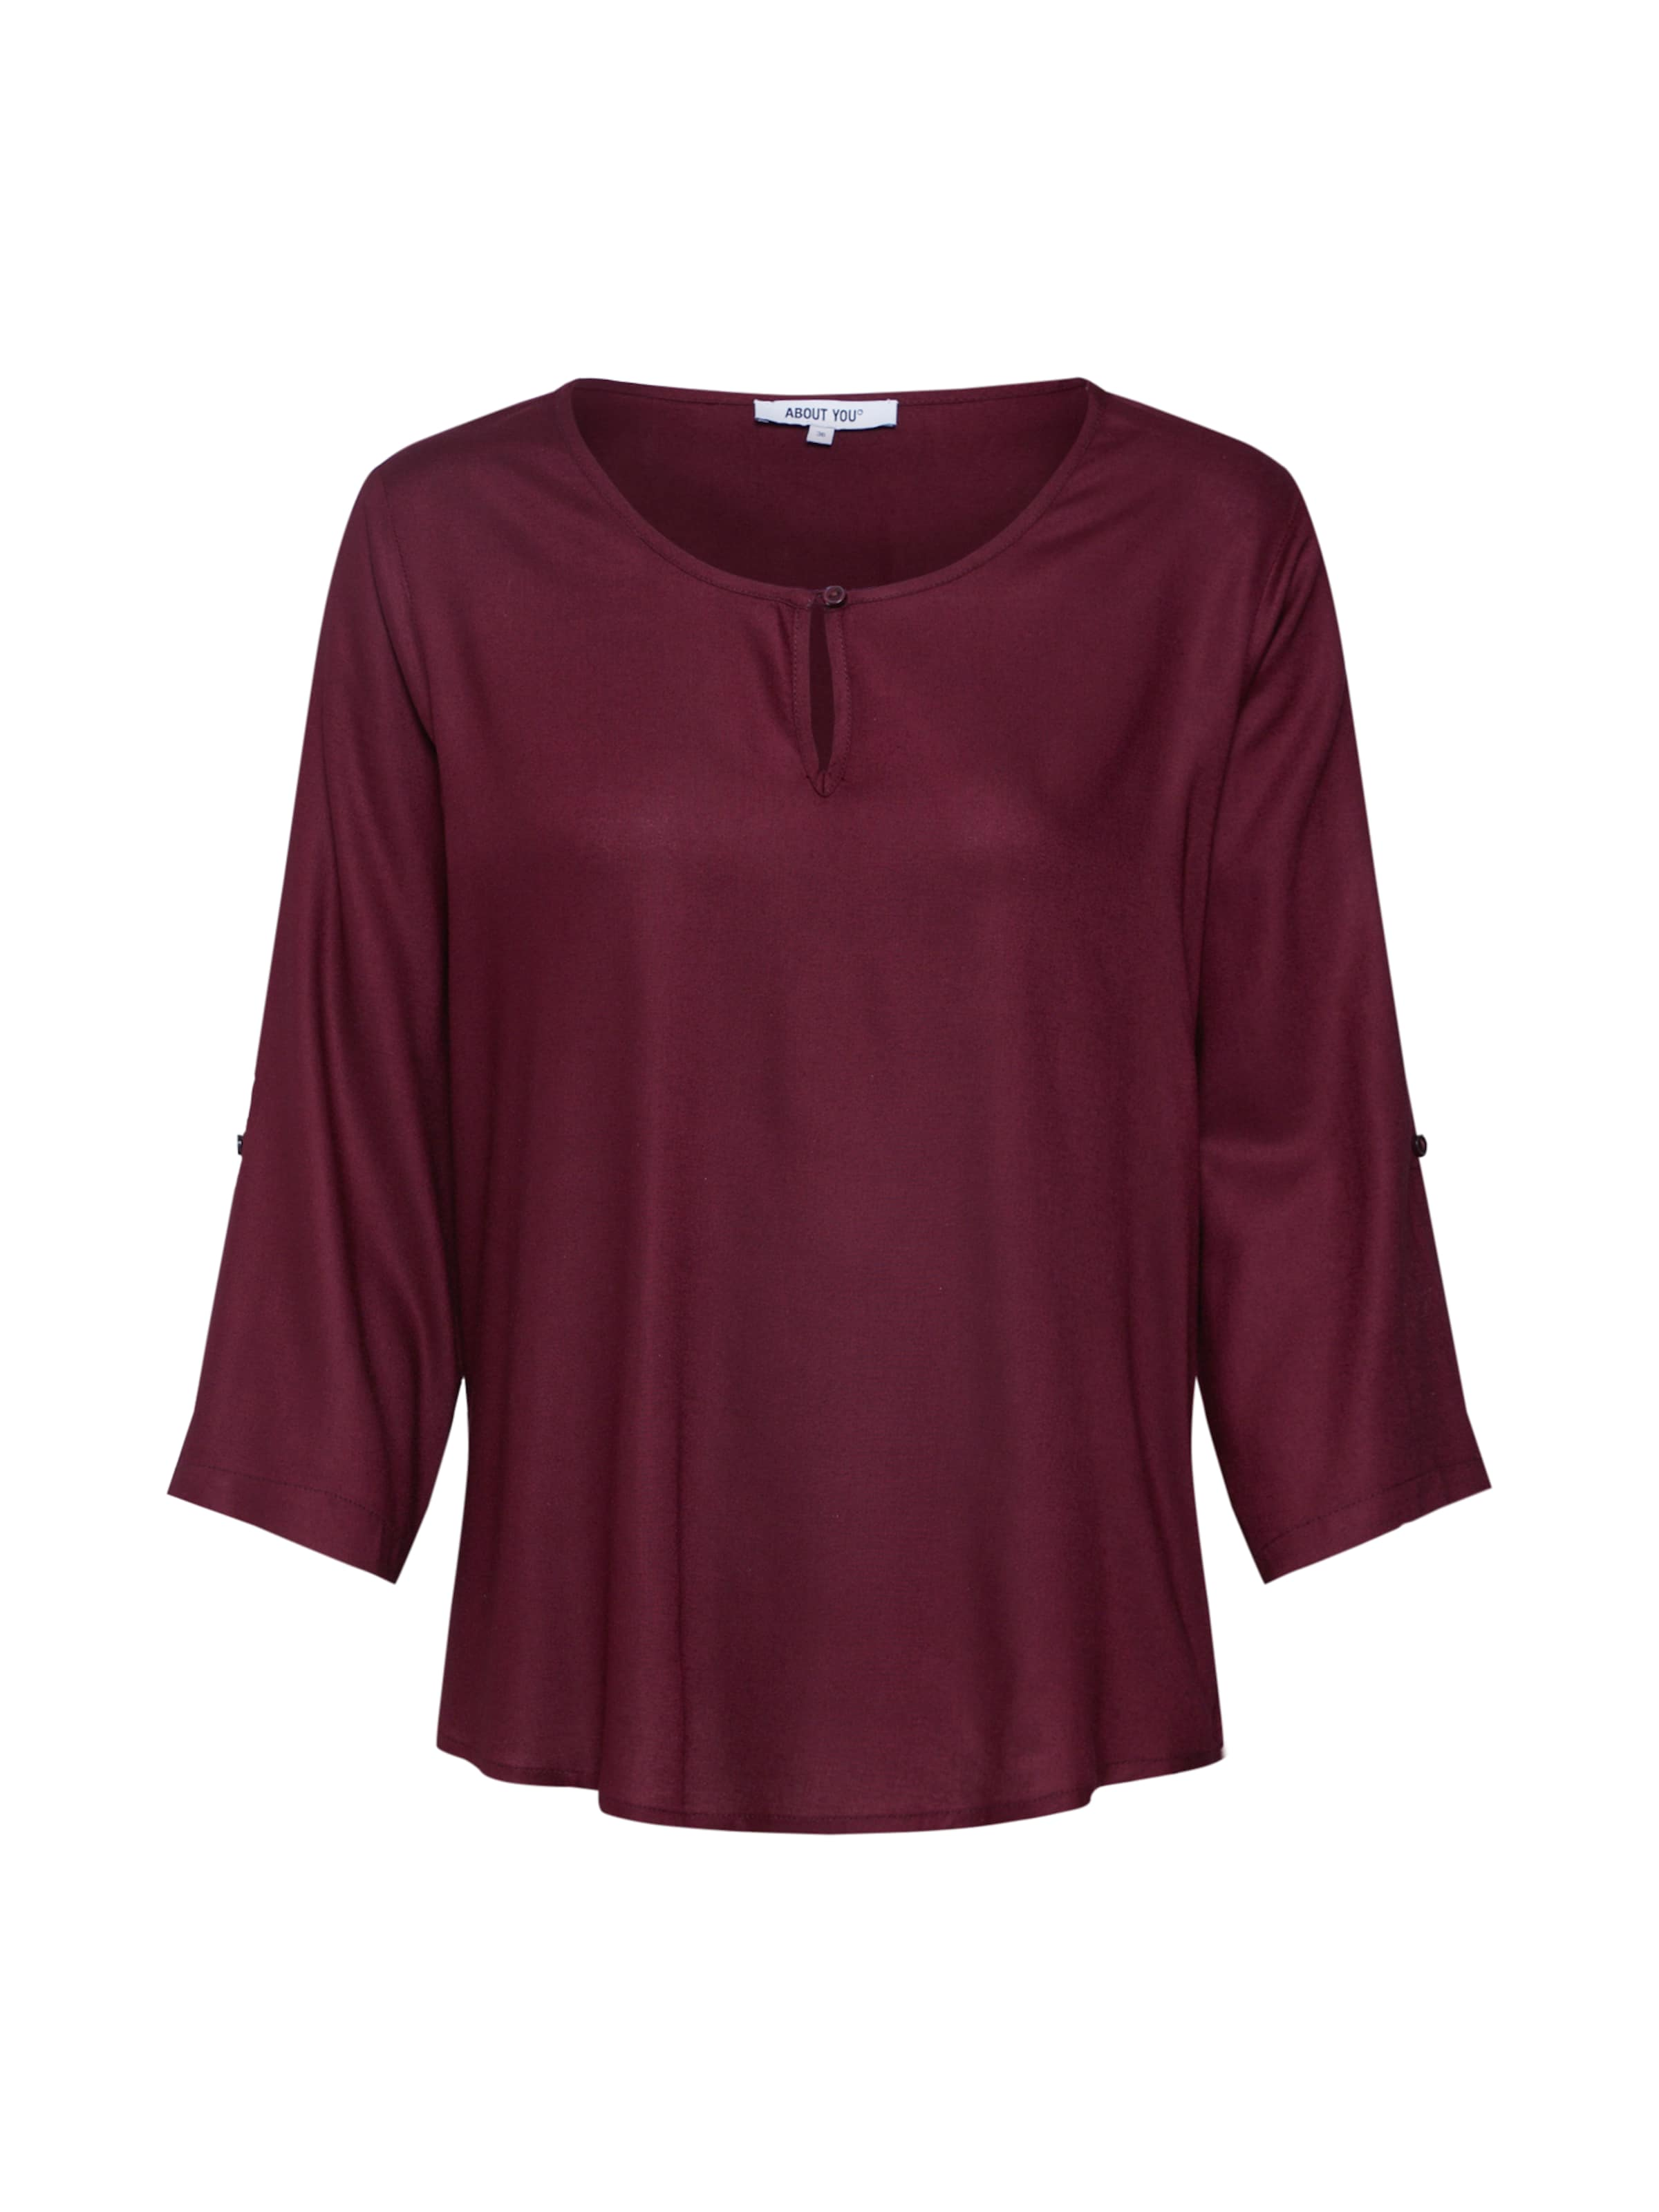 Bluse Bordeaux About You In 'carina' eCxordB